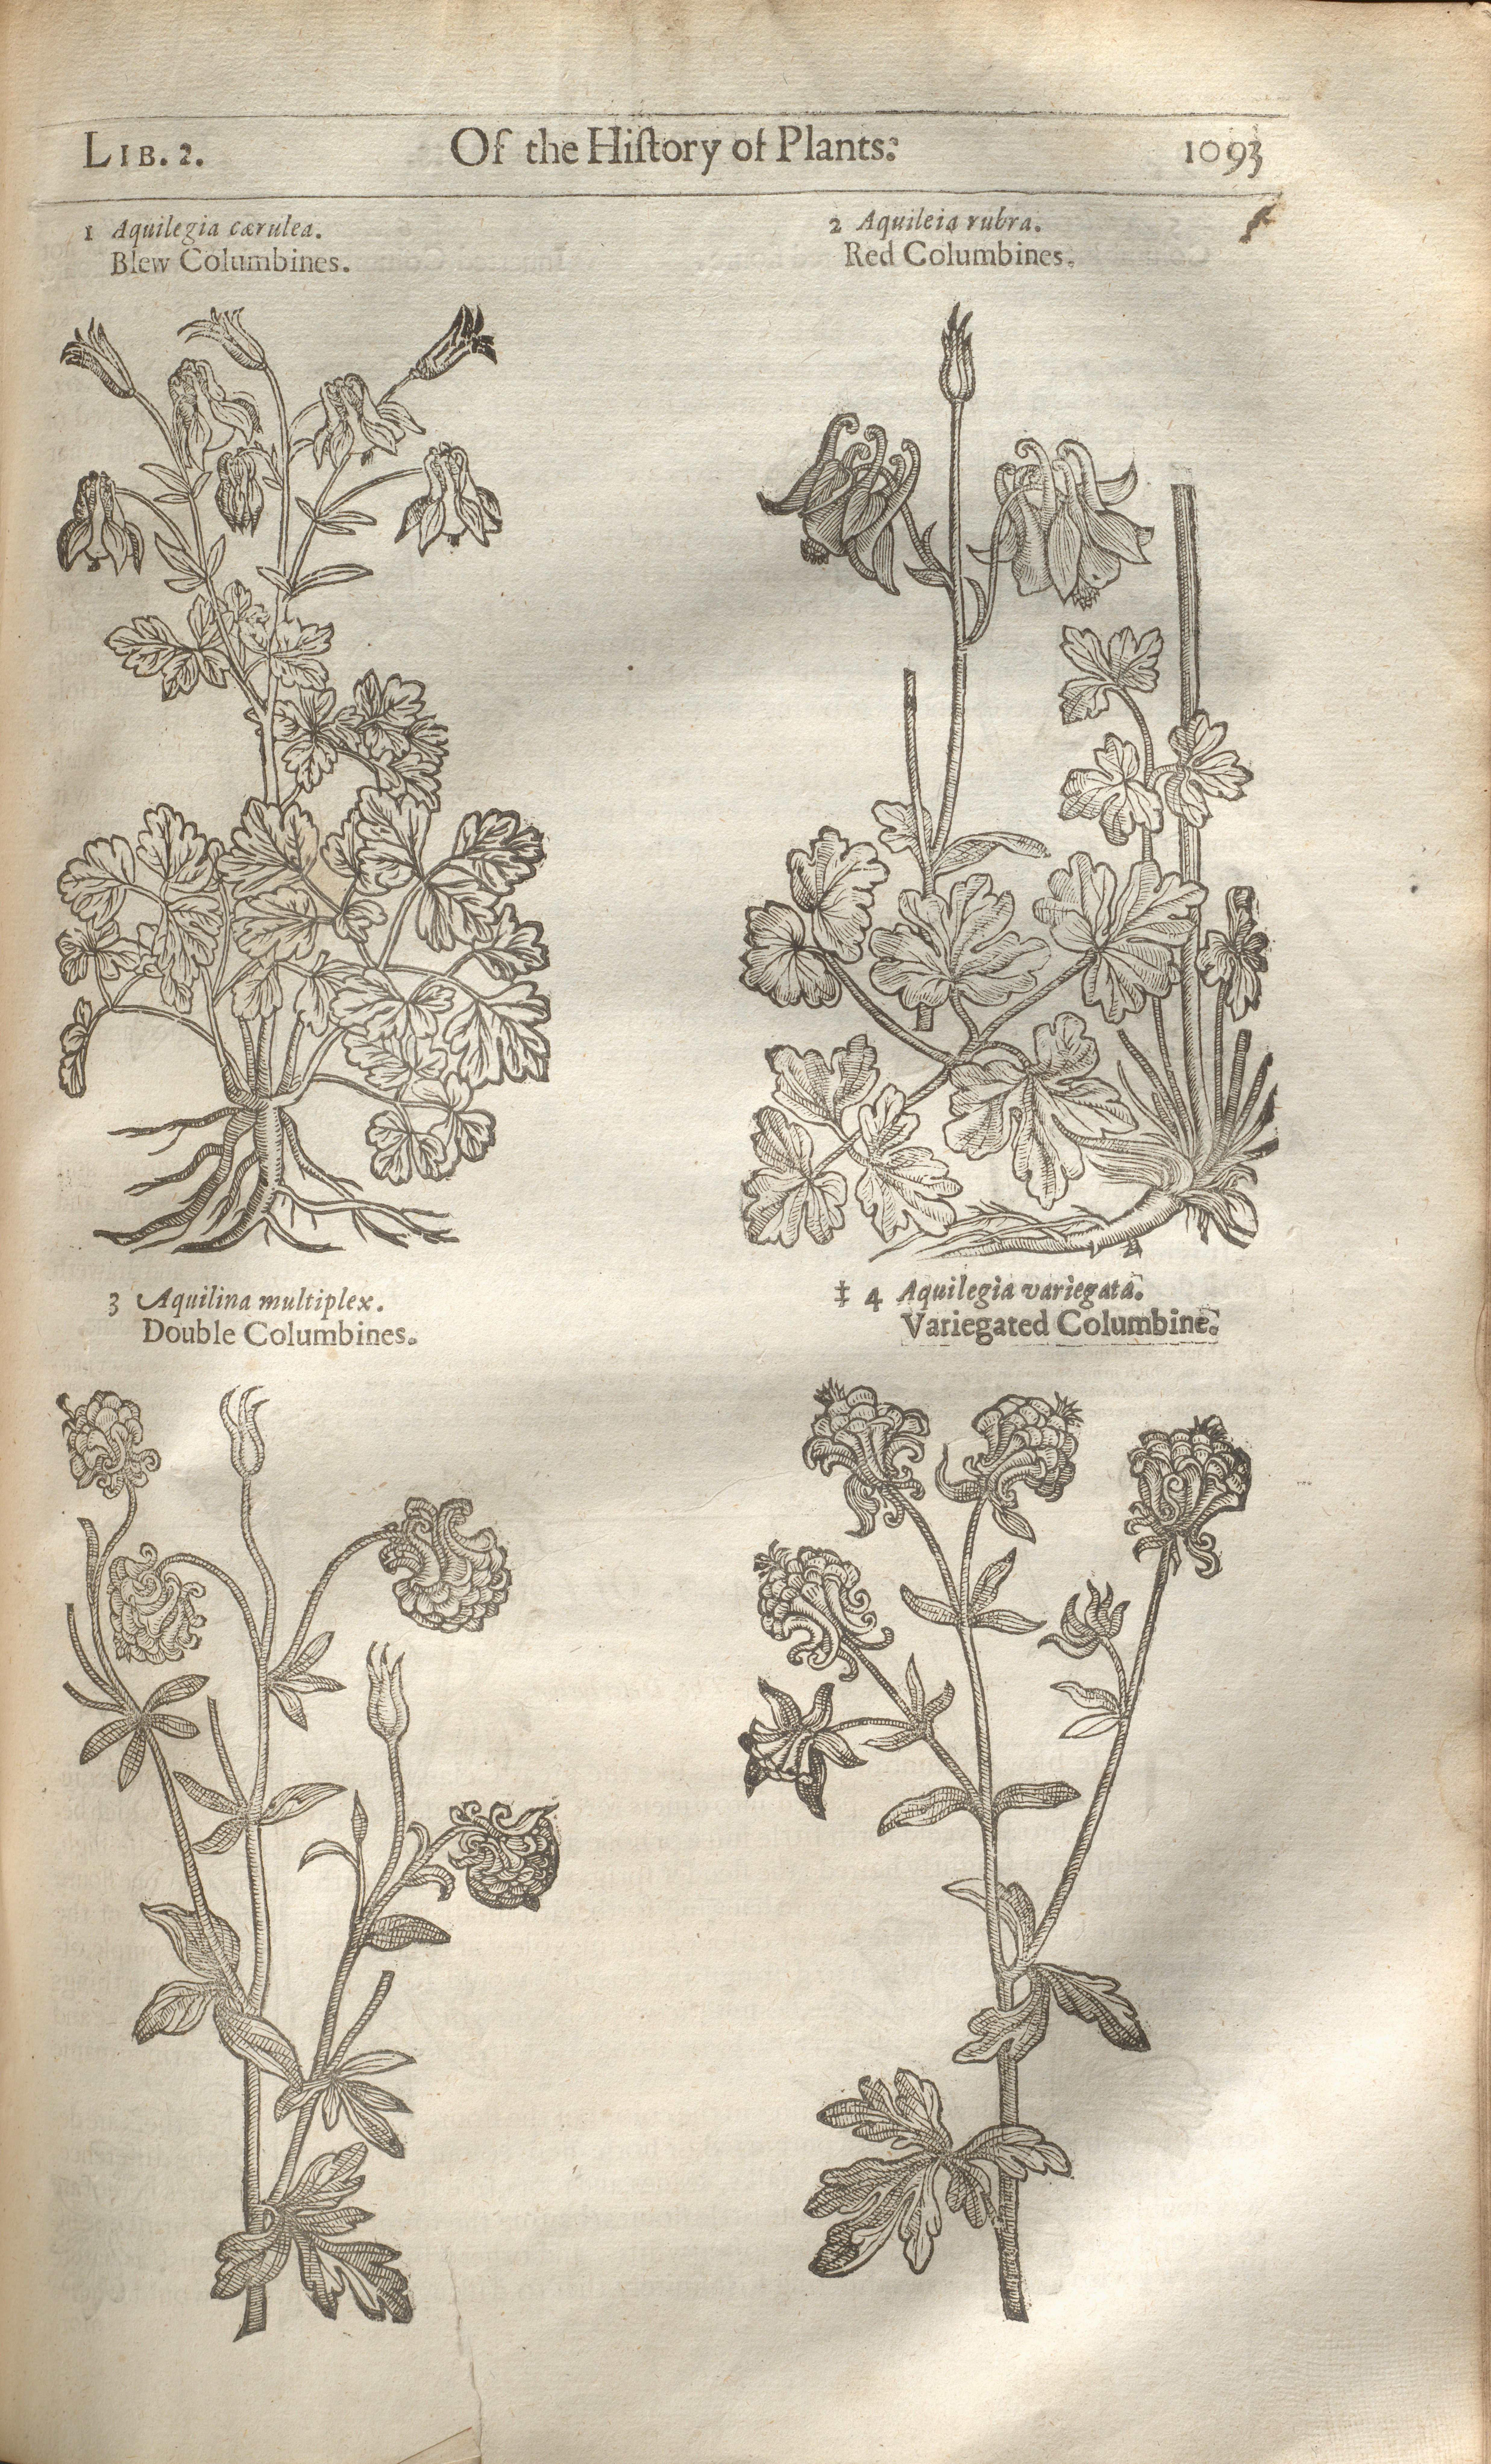 Title page and columbine illustrations from John Gerard's The Herball …, London, England, 1633. This publication proves that even within the study of plant life, historical content lingers.